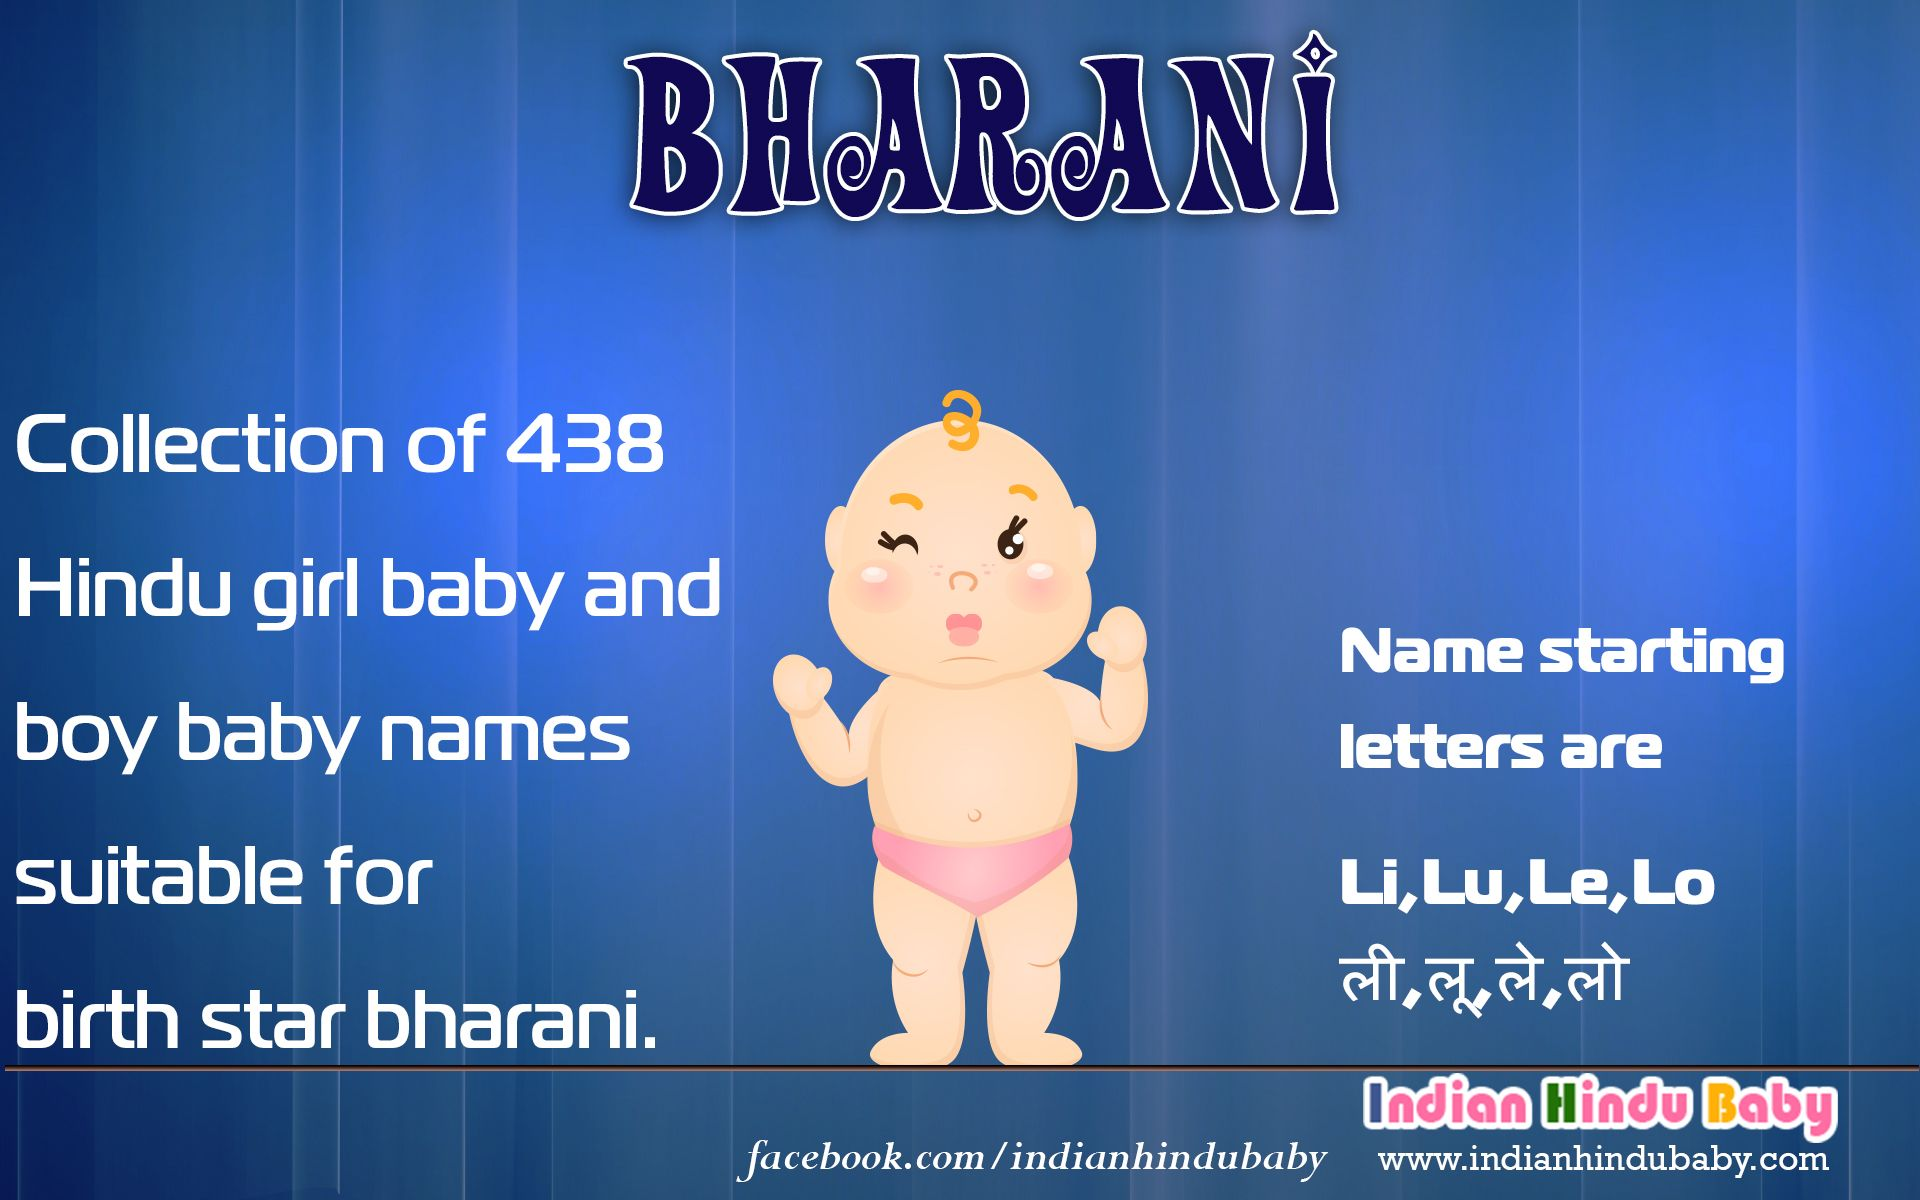 Here Is The Collection Of 438 Hindu Girl Baby And Boy Baby Names Suitable For Birth Star B Harani Name Starting Baby Name Letters Baby Names Baby Boy Names